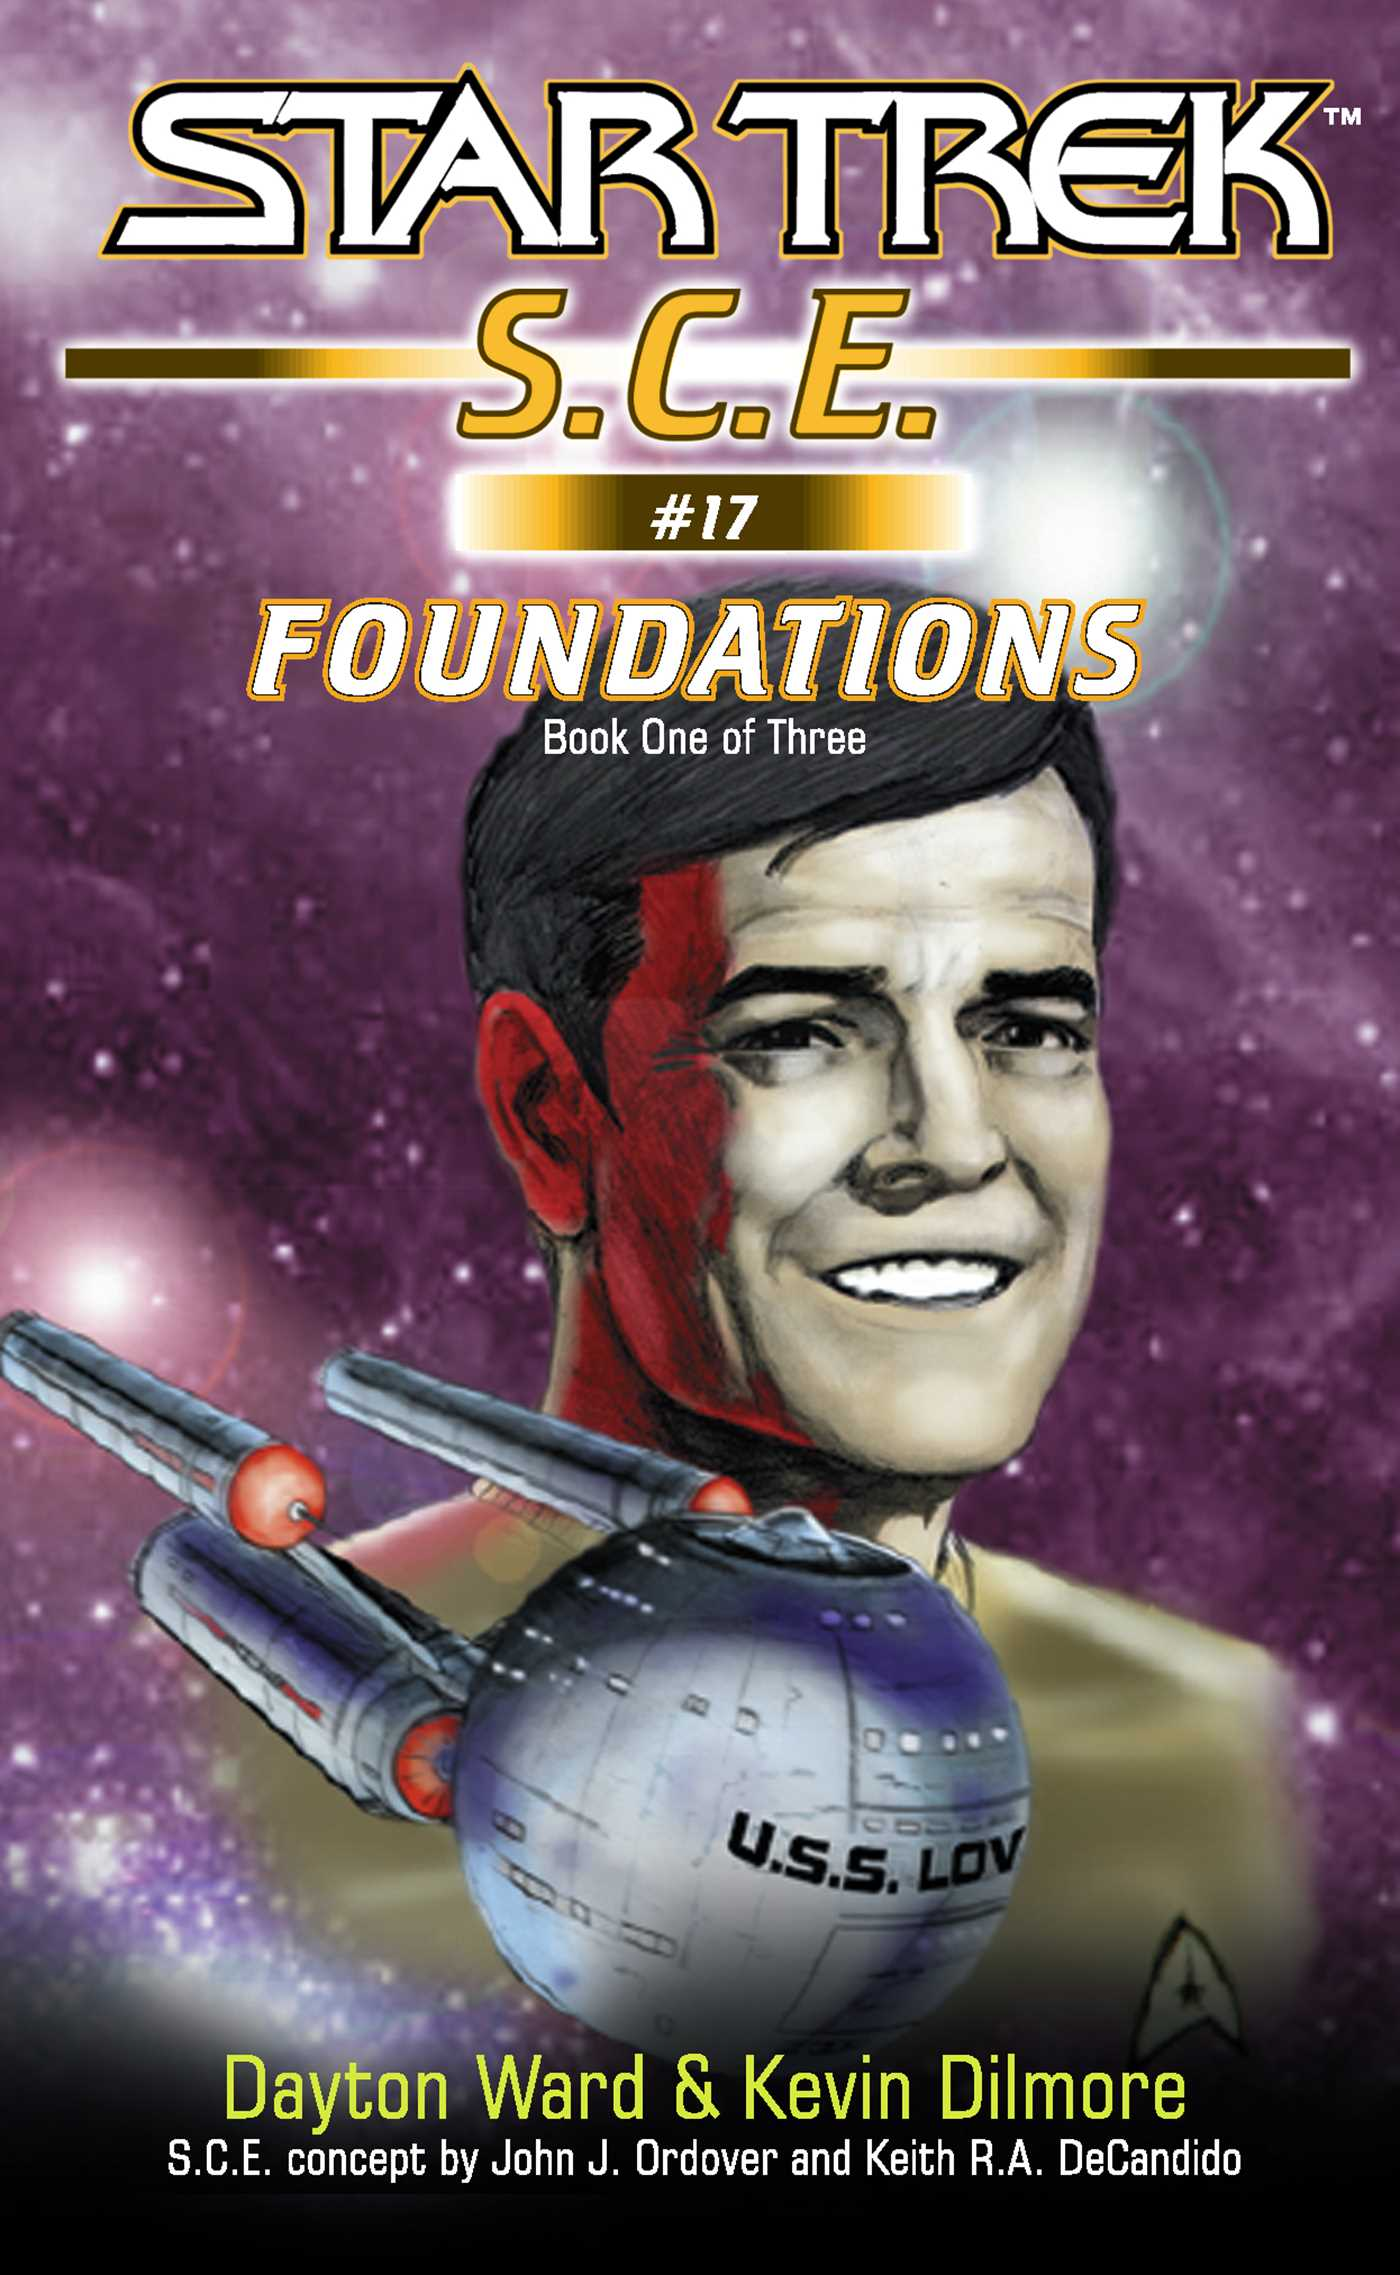 Star trek corps of engineers foundations 1 9780743456722 hr